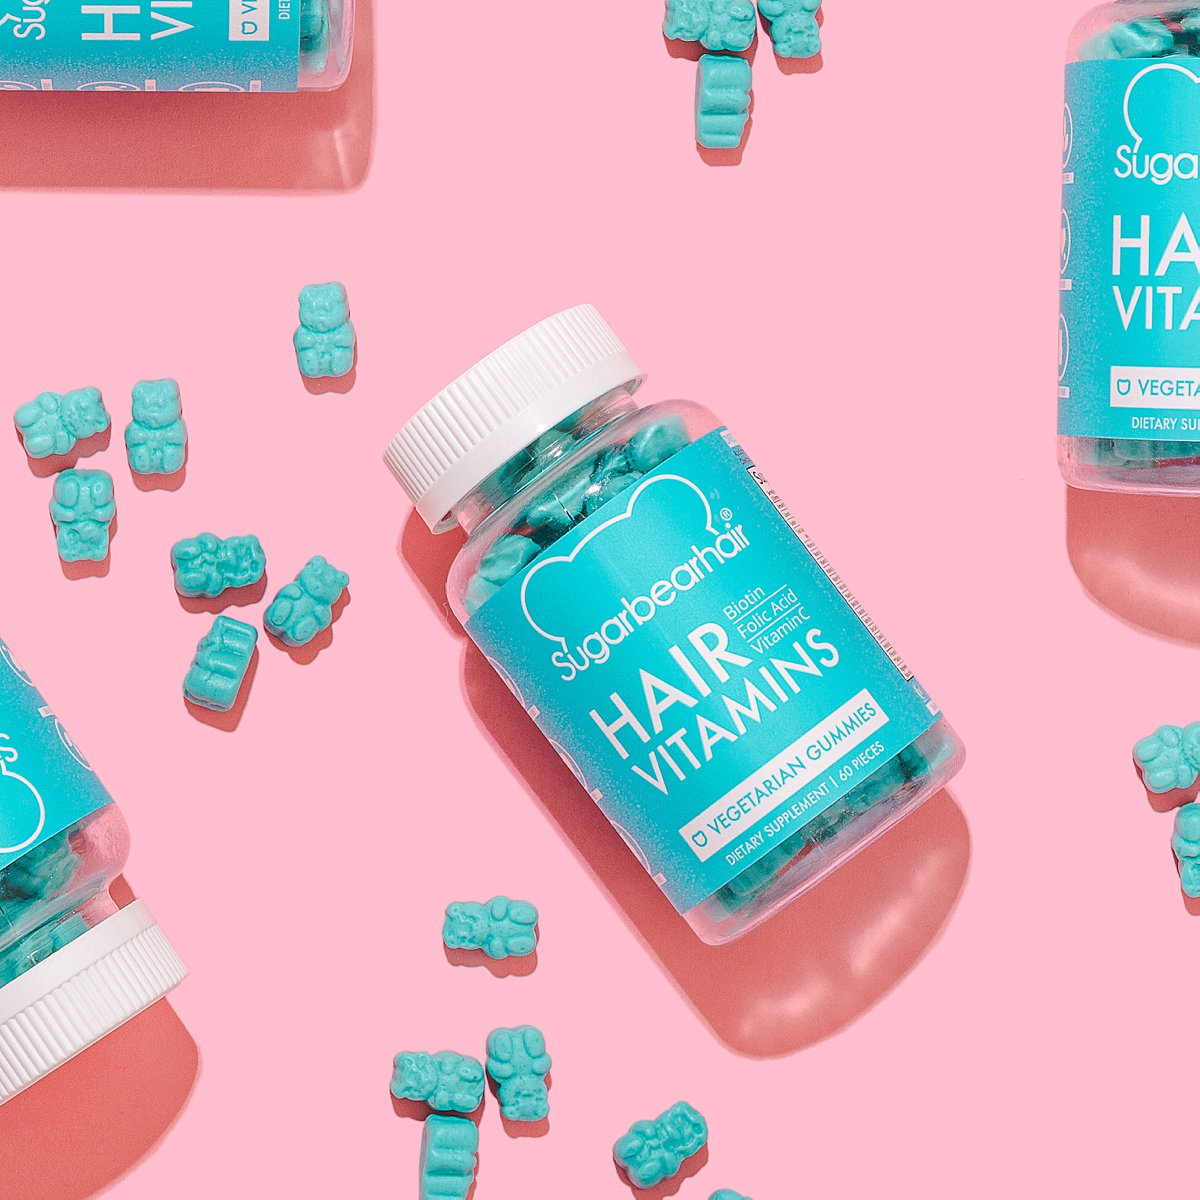 Colourful content creation for SugarBearHair vitamin supplements. Styled cosmetics product photography by Marianne Taylor.